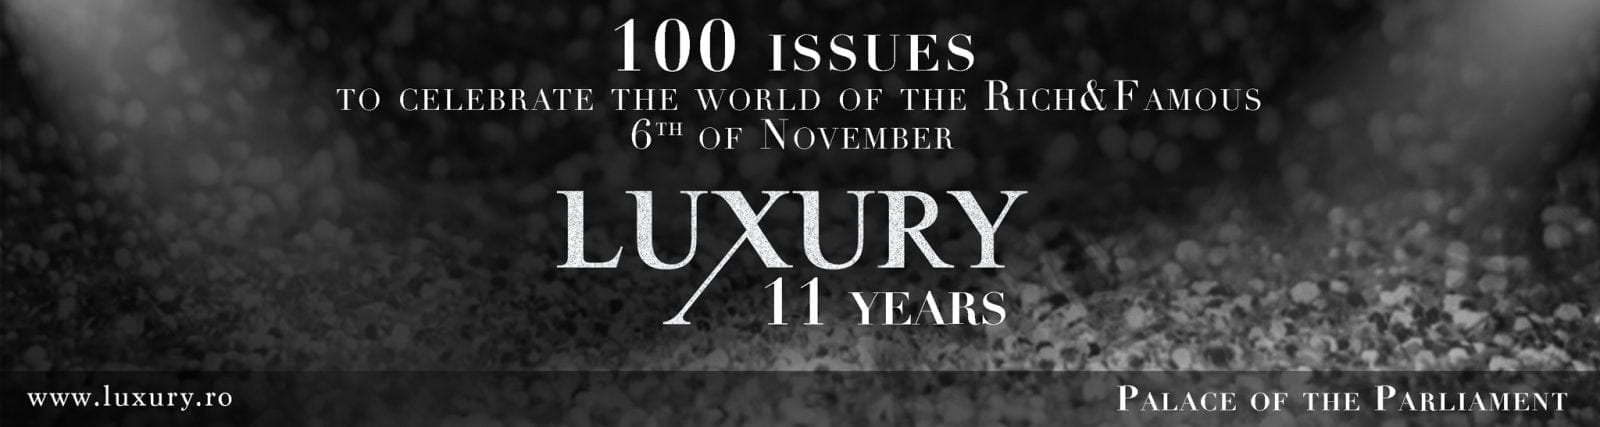 Save the date - Luxury Gala 100 issues - 11 years